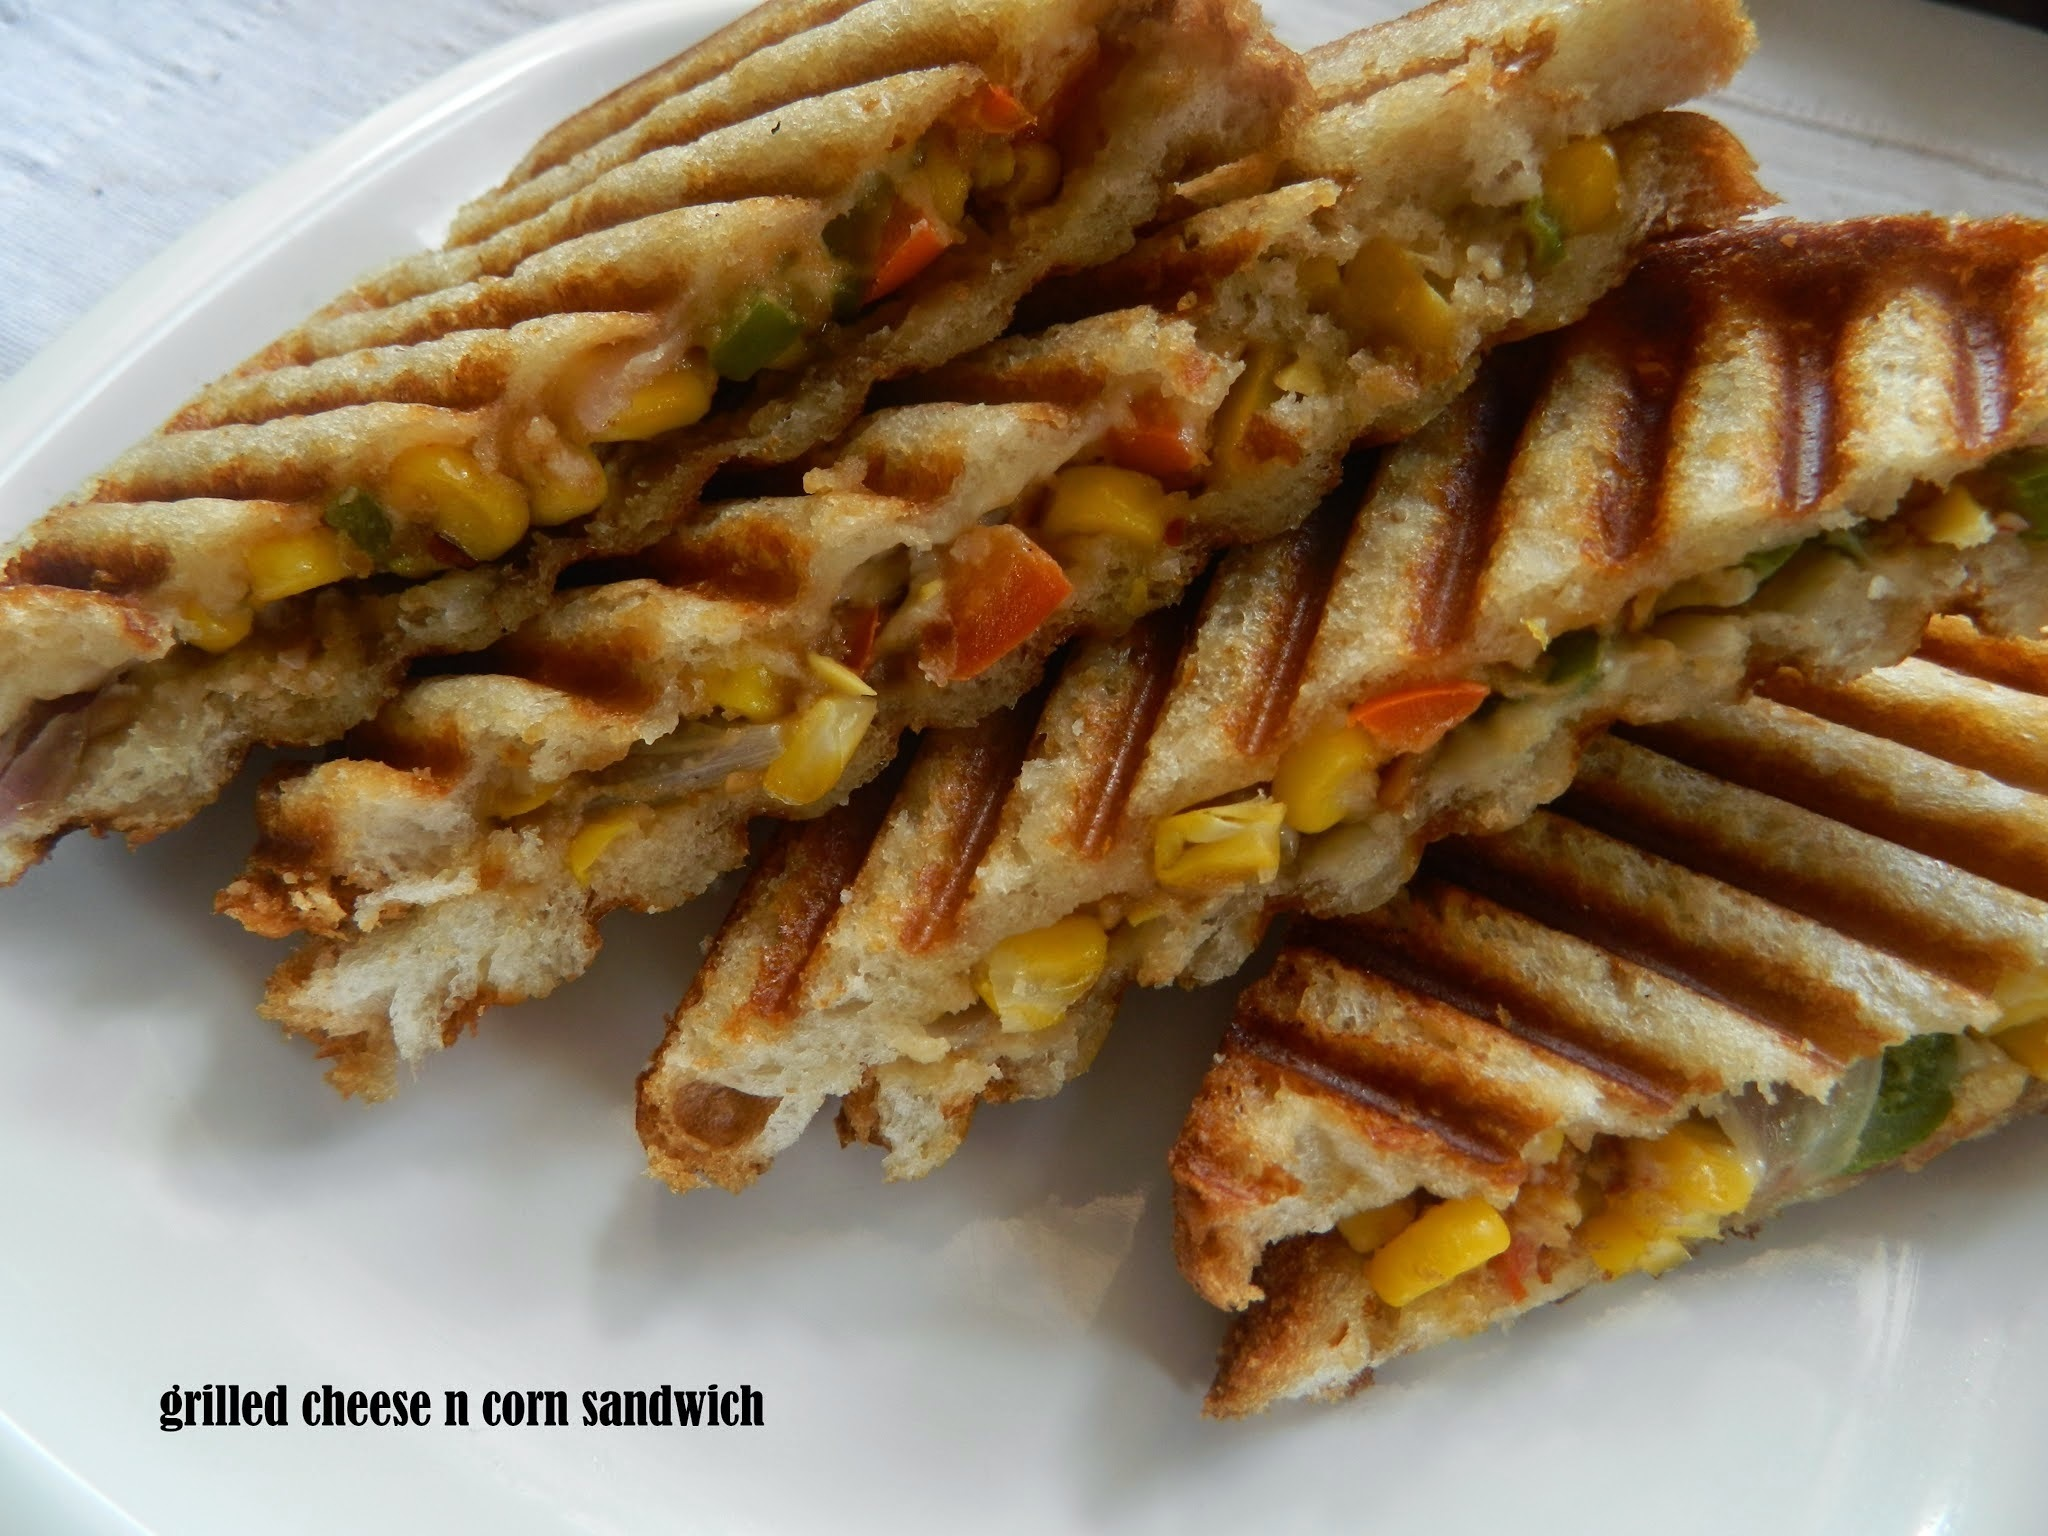 Grilled Cheese and Corn sandwich